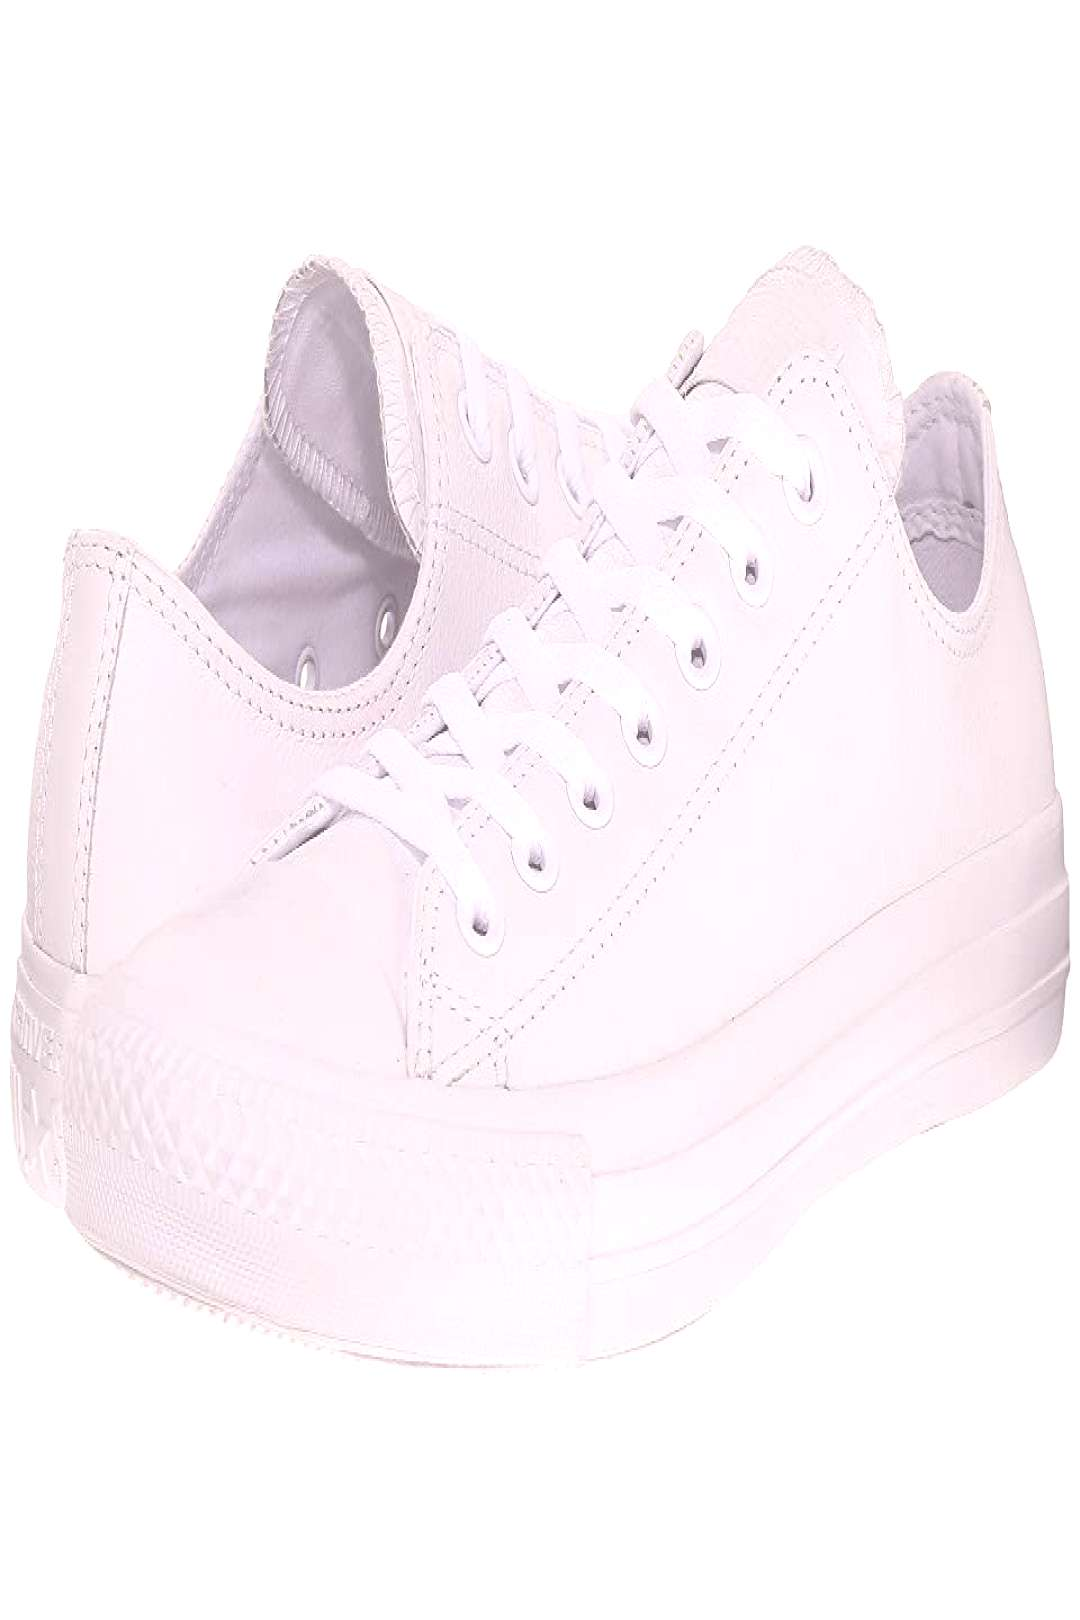 Converse Chuck Taylor(r) All Star(r) Leather Ox (White) Shoes. For men's sizes  please select a hal